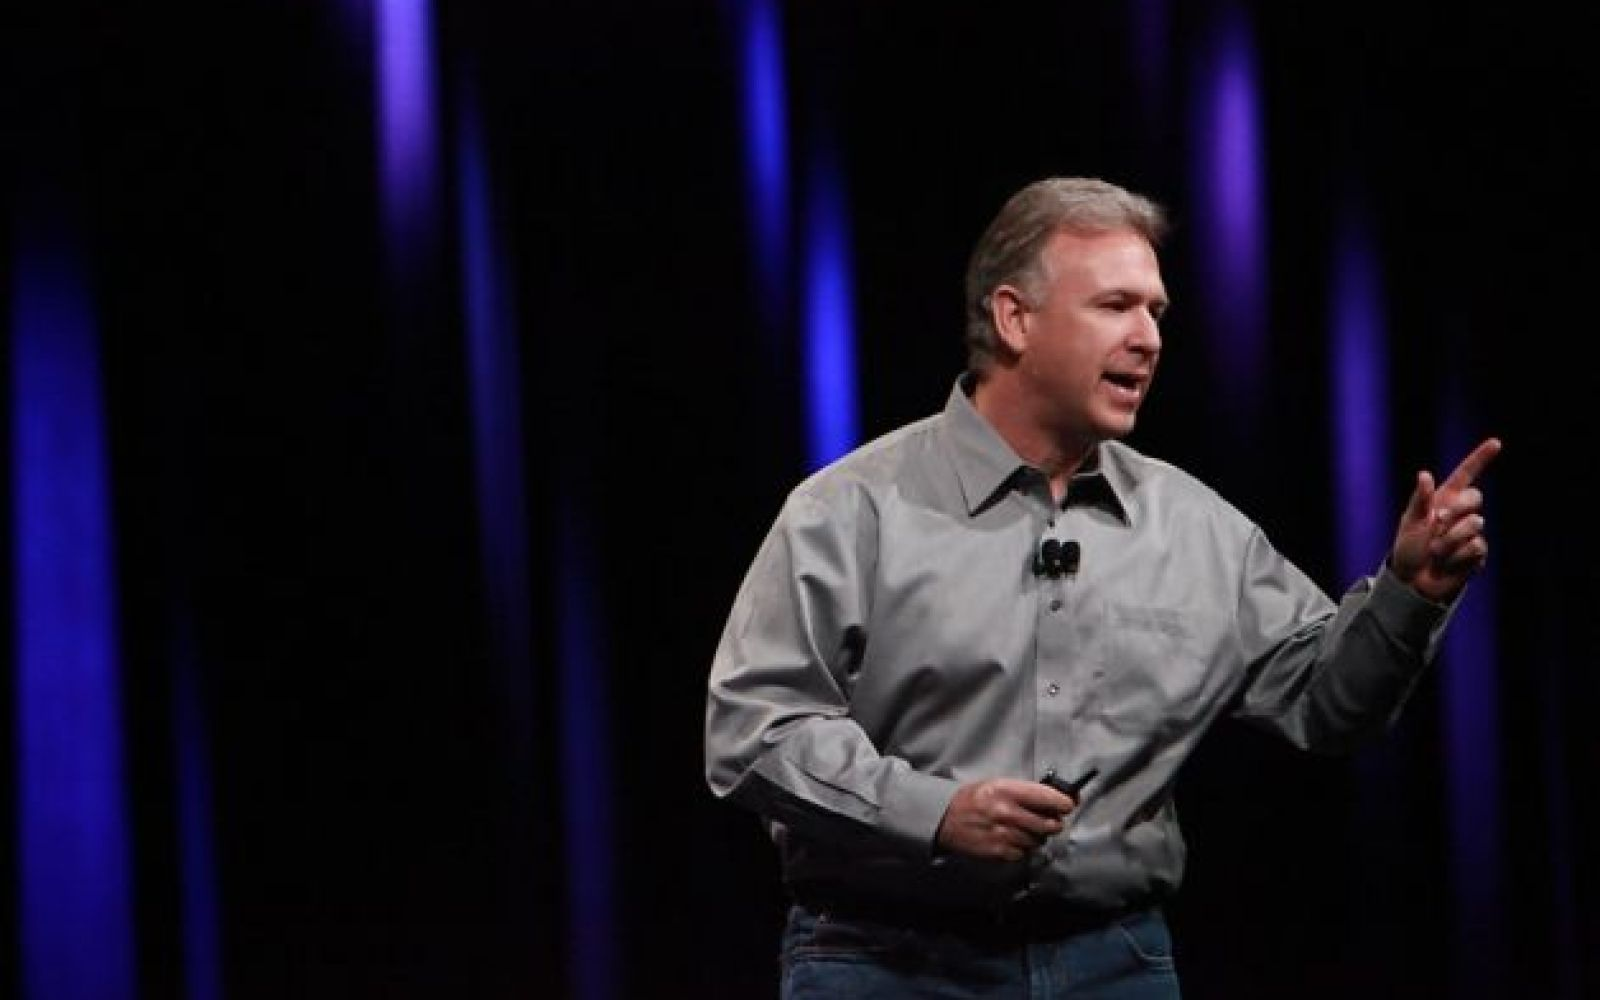 Apple's Phil Schiller to testify once again in Samsung patent lawsuit, Forstall also a possibility